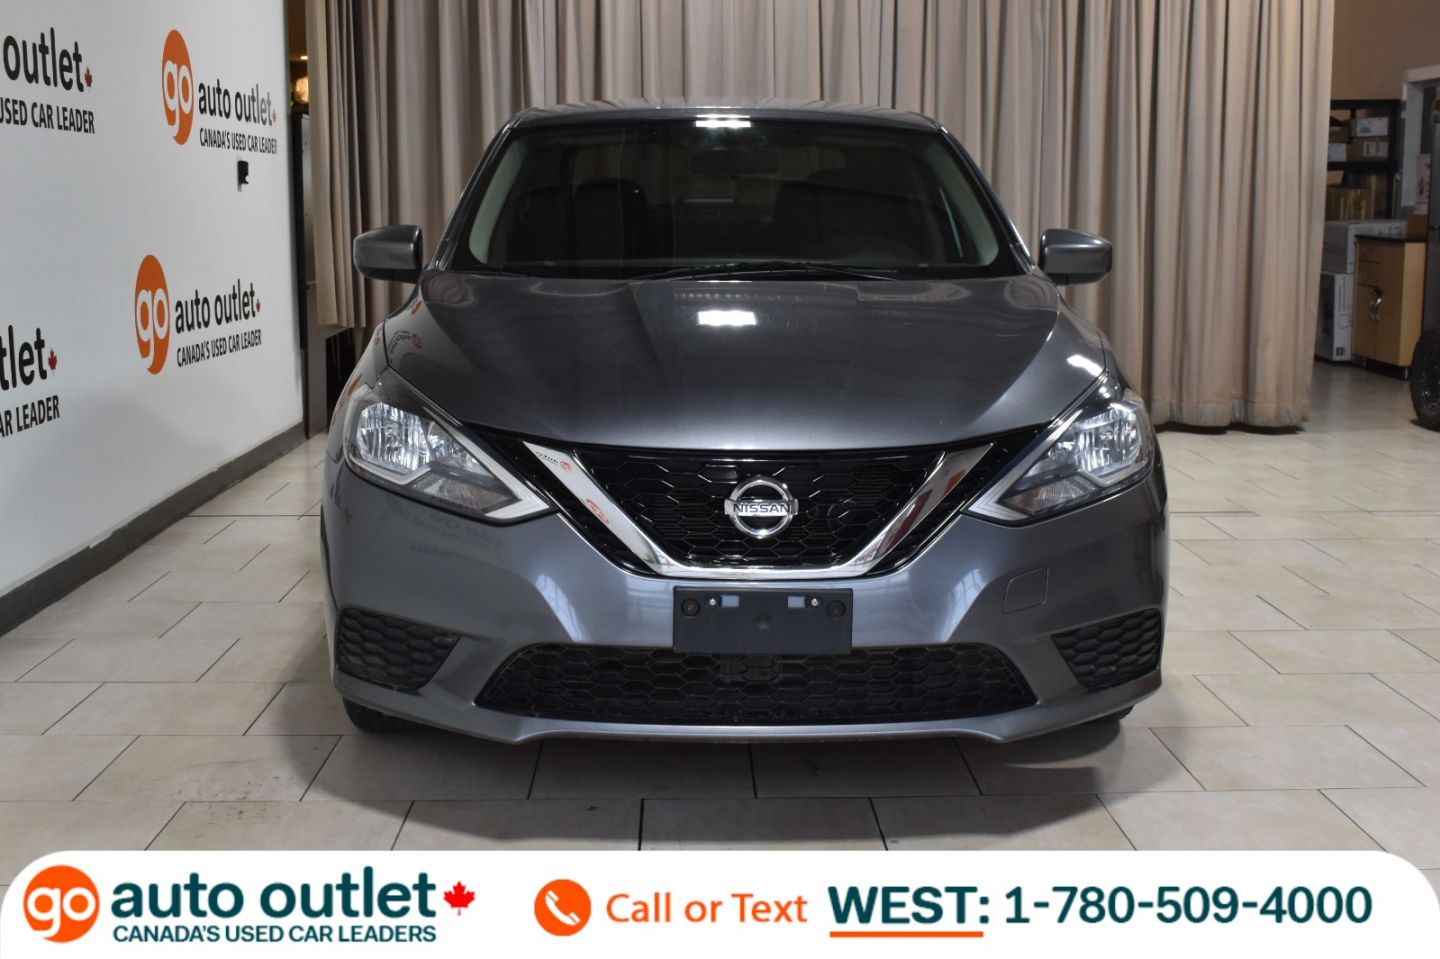 2017 Nissan Sentra SV for sale in Edmonton, Alberta